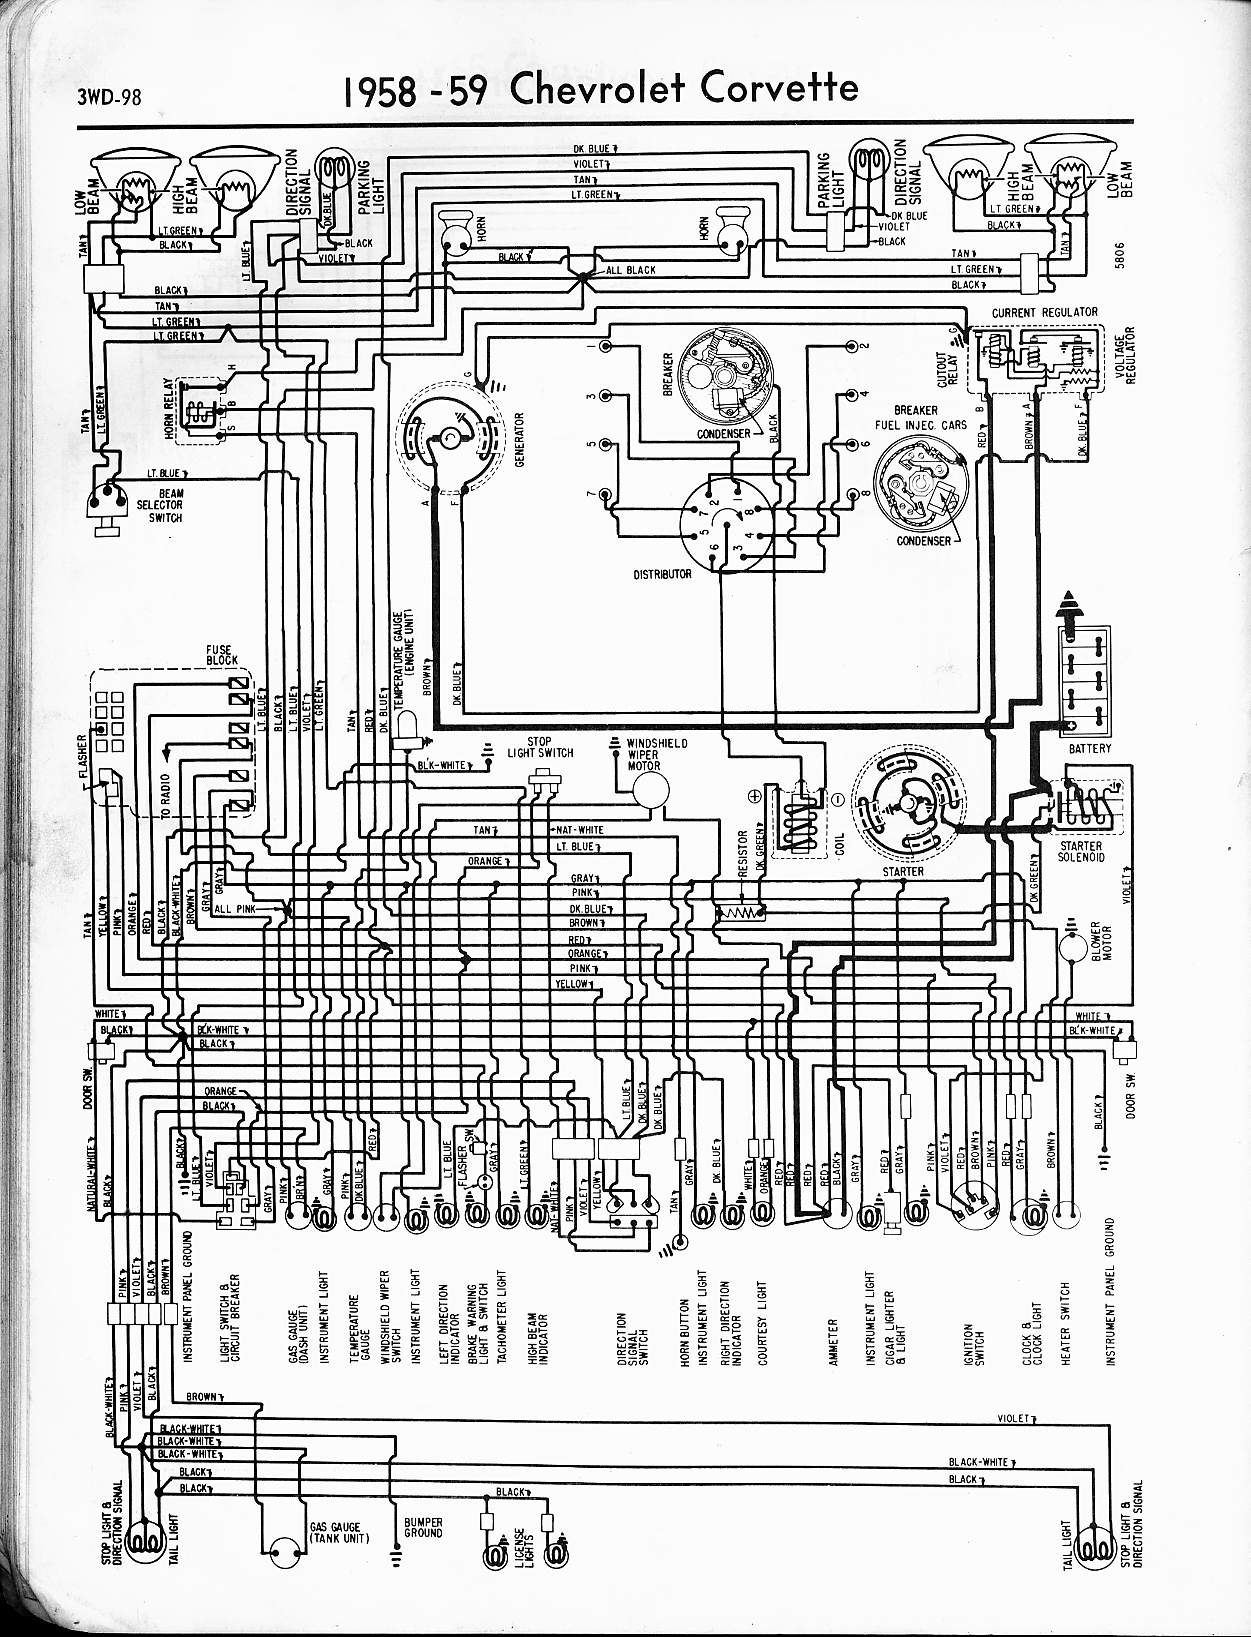 MWireChev58_3WD 098 1958 impala wiring diagram data wiring diagram